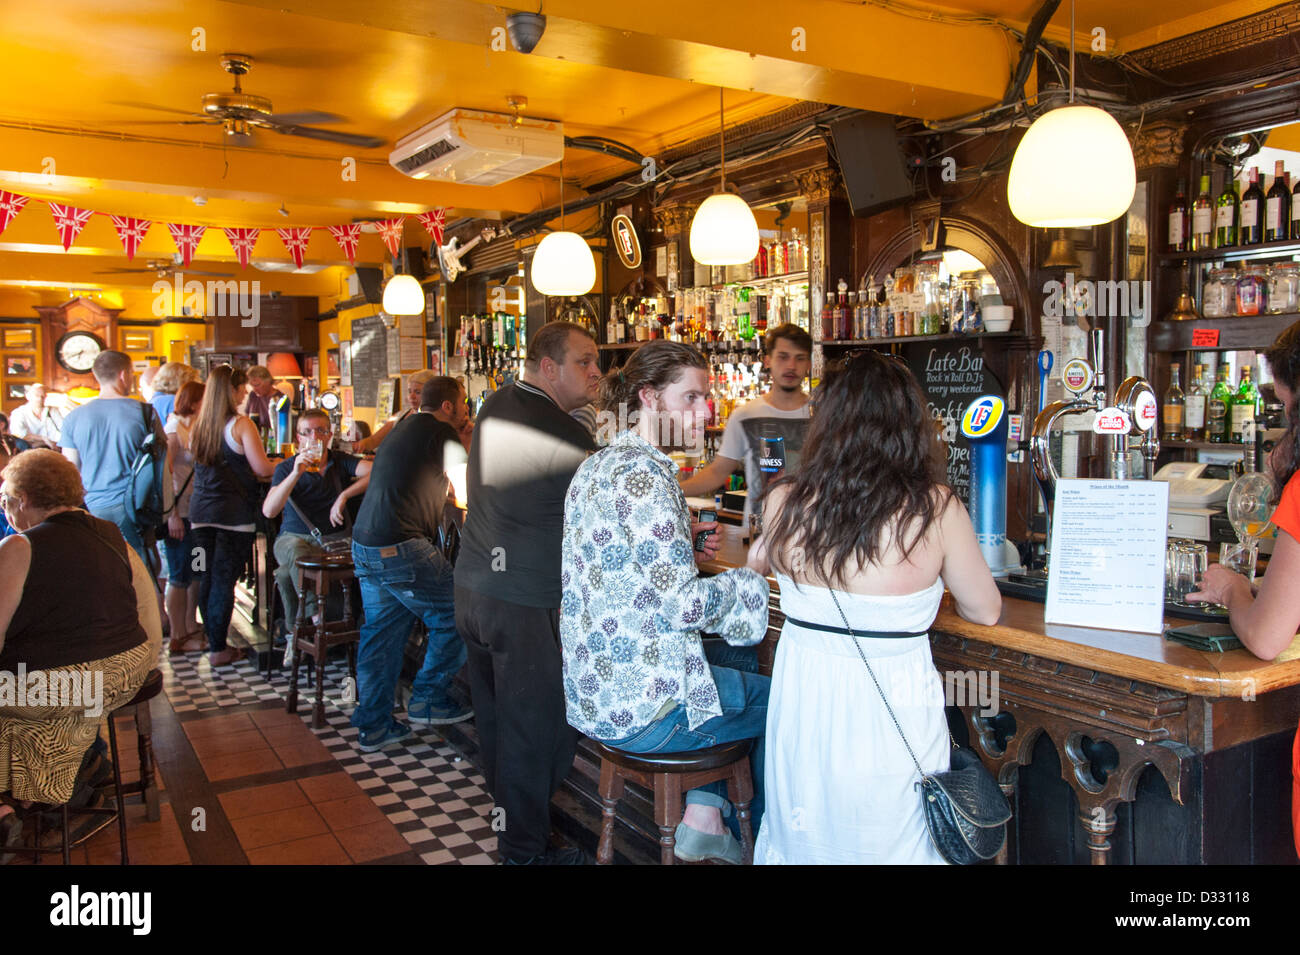 The Elephants Head pub in Camden Town, London, England, UK - Stock Image